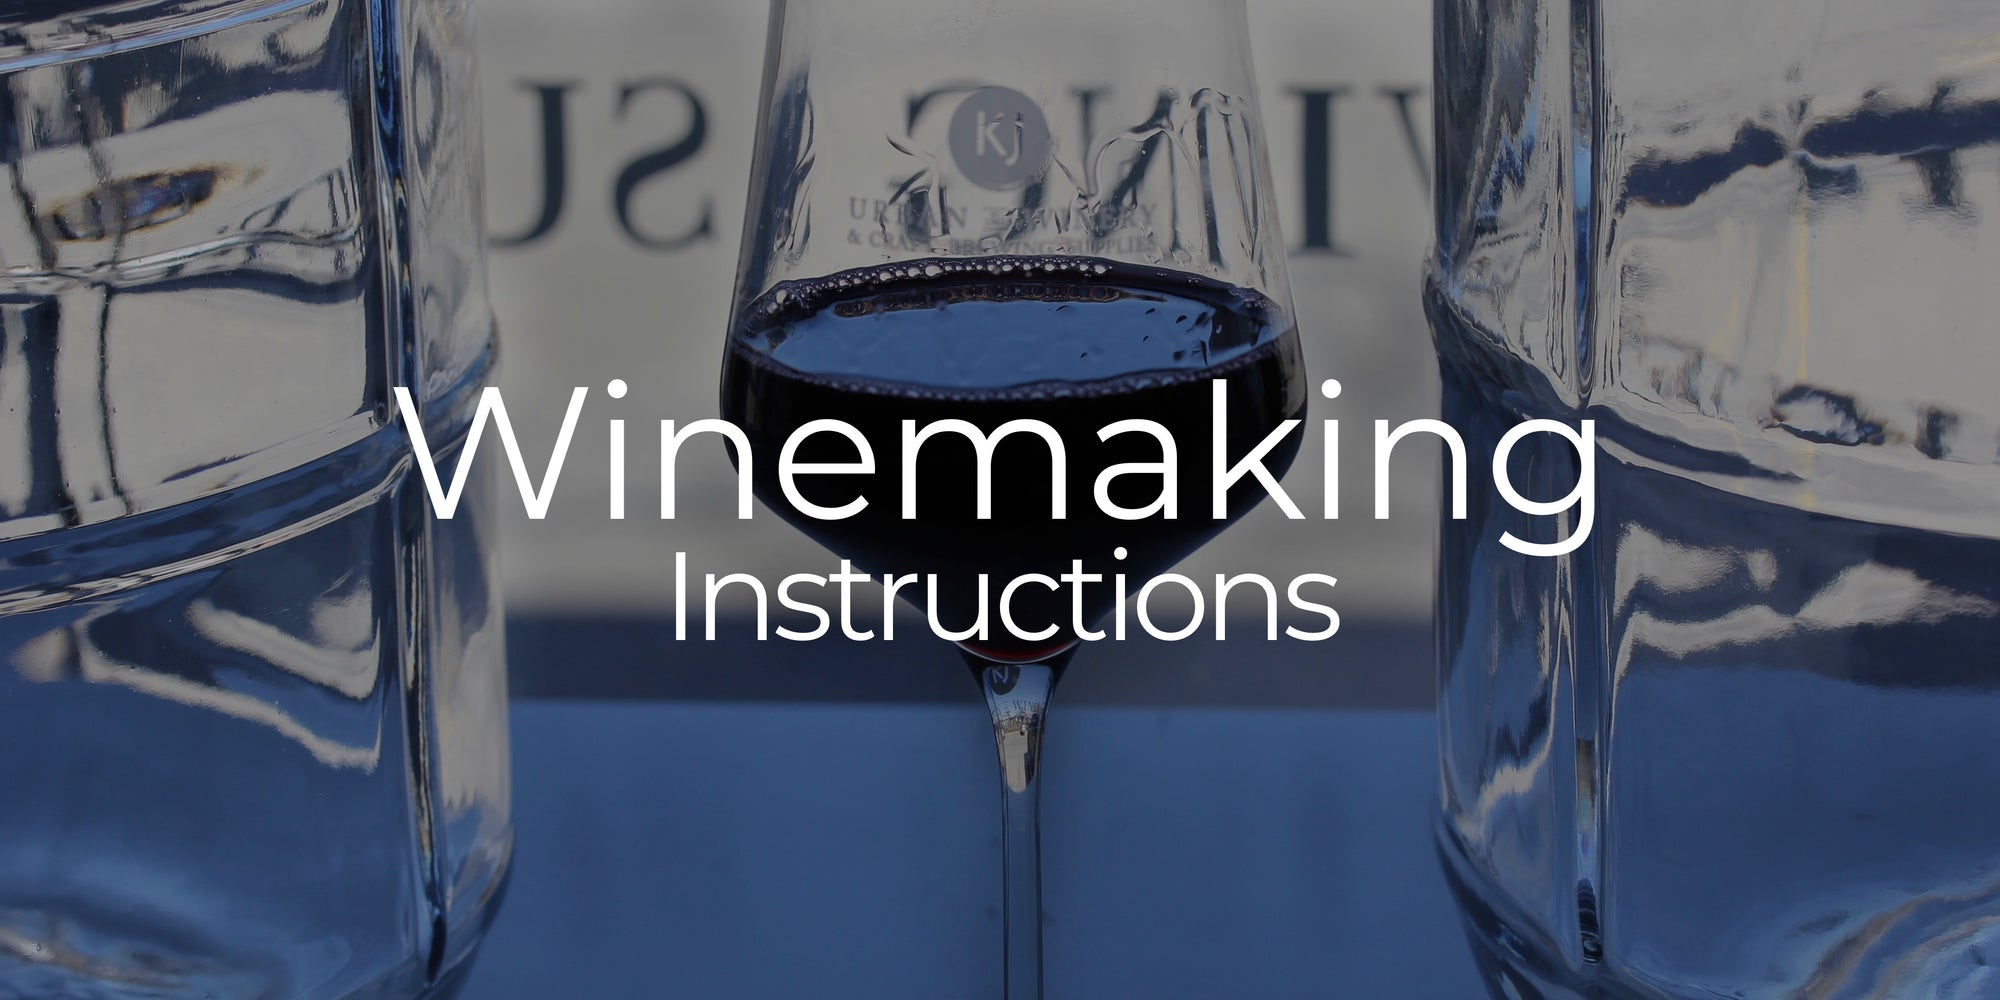 Winemaking Instructions